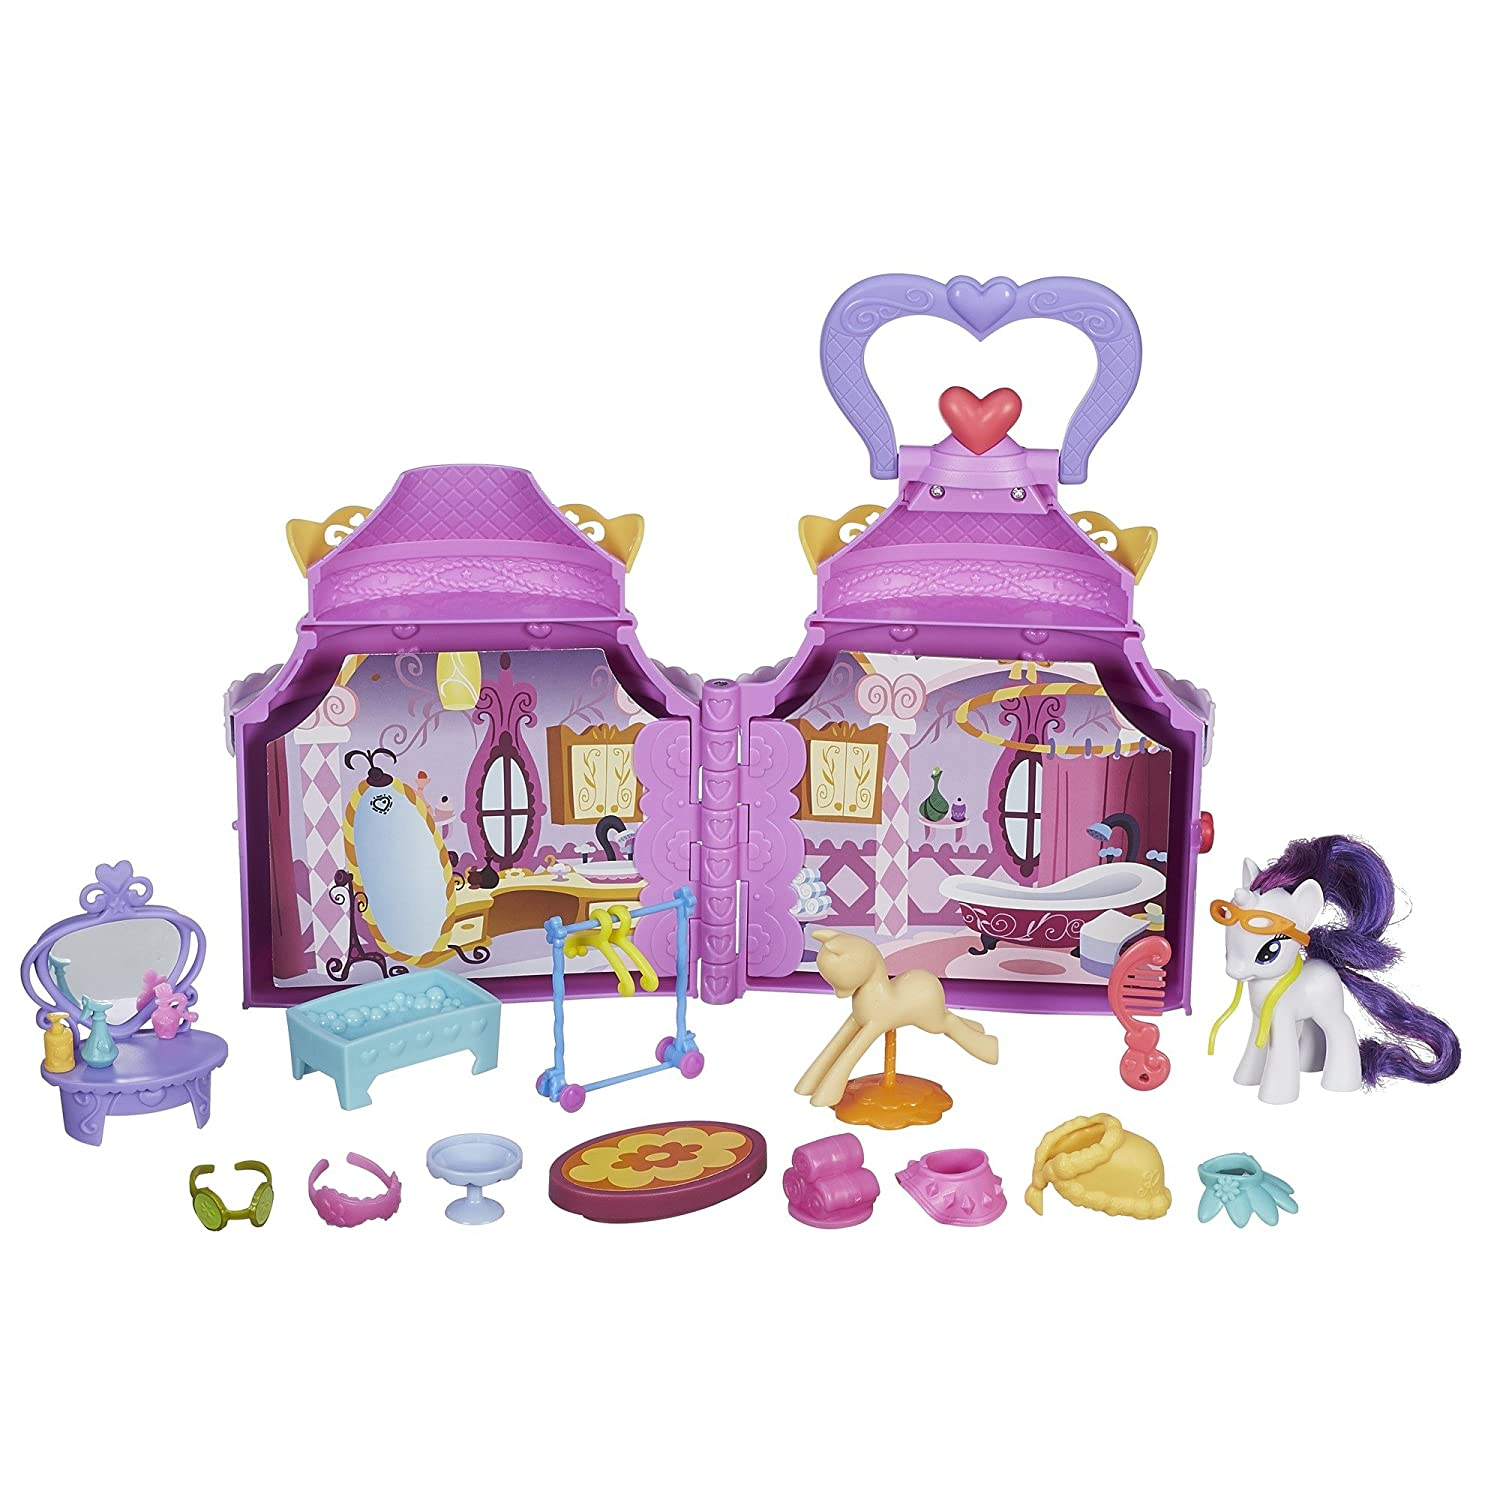 My Little Pony Cutie Mark Magic Rarity Booktique Playset(Discontinued by manufacturer)